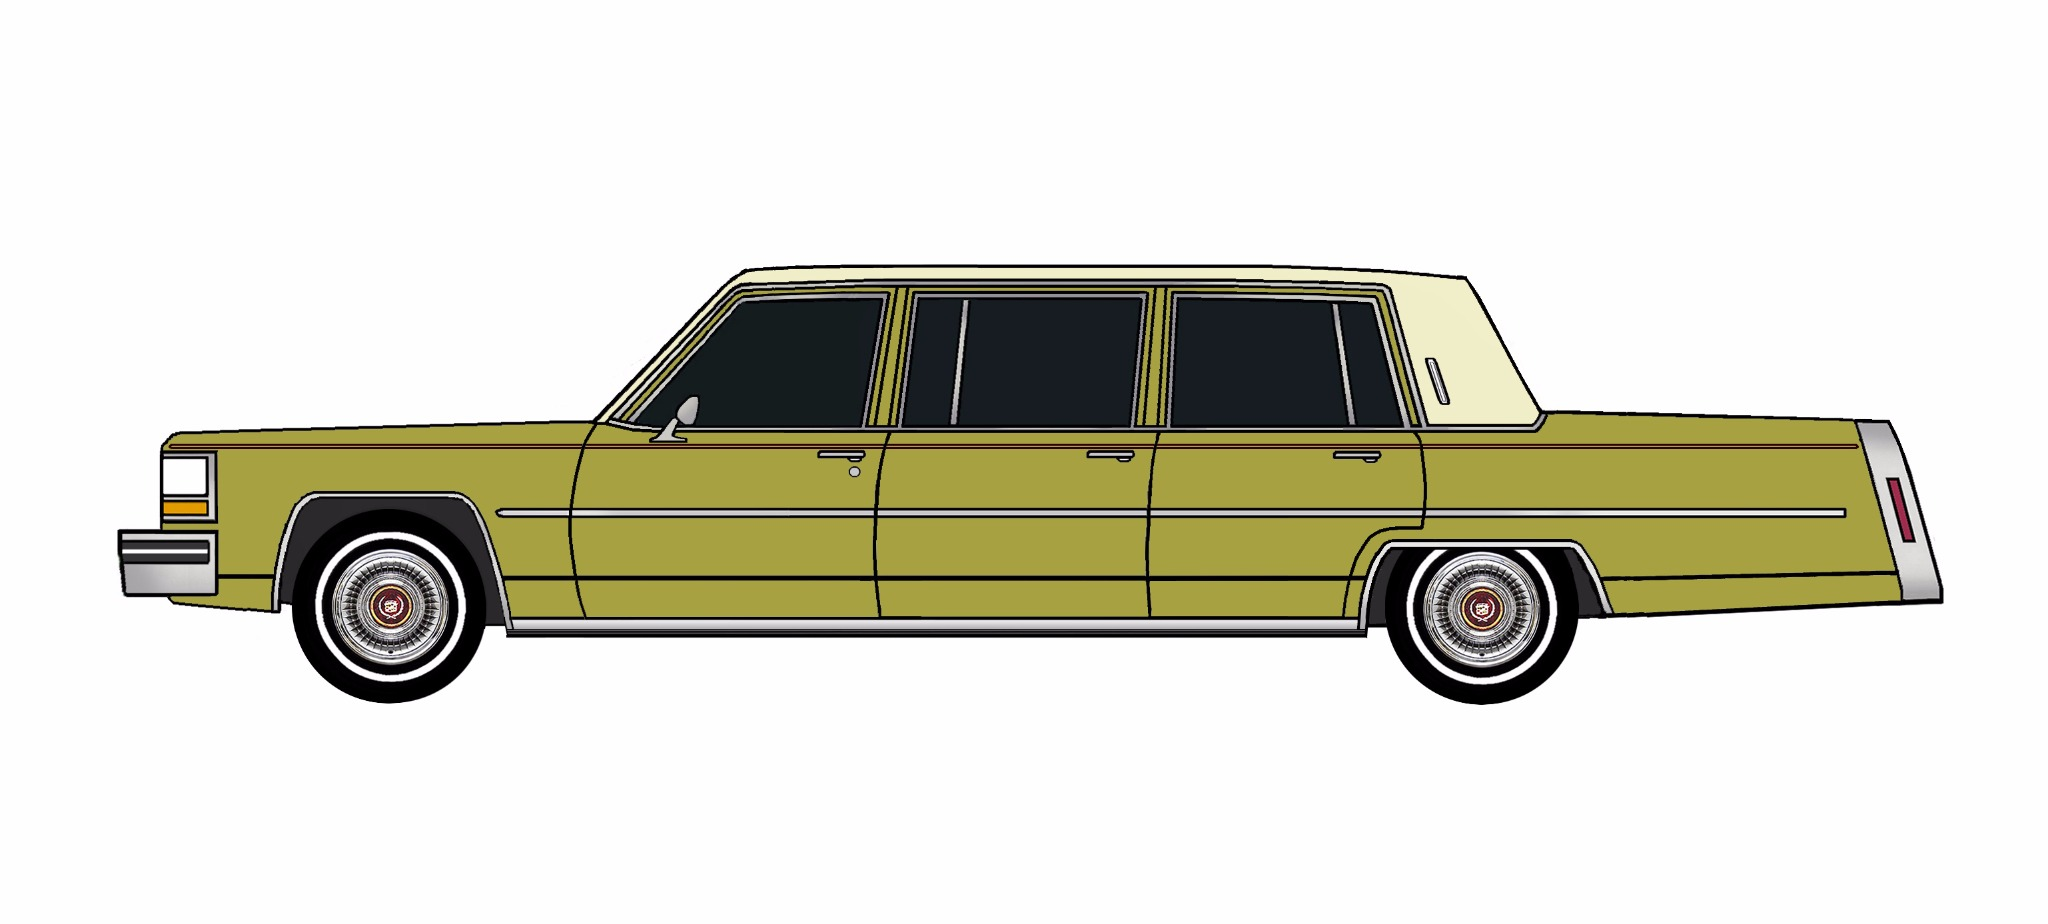 1981 Cadillac Fleetwood Funeral Limo GOLDEN OLIVE